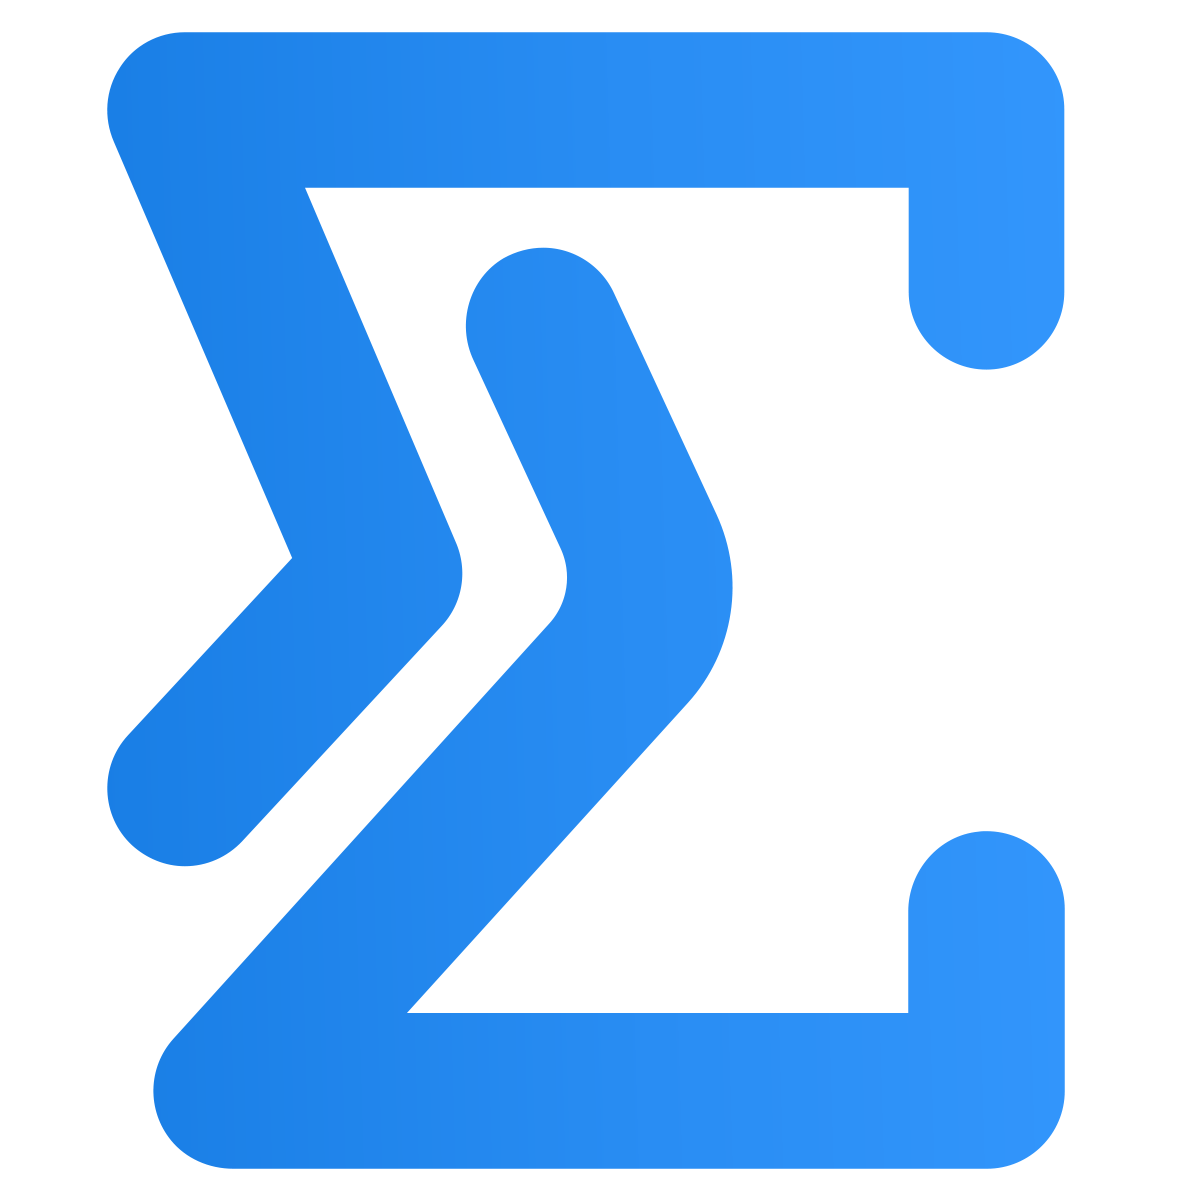 Hire Shopify Experts to integrate Adsigma for Google Ads app into a Shopify store